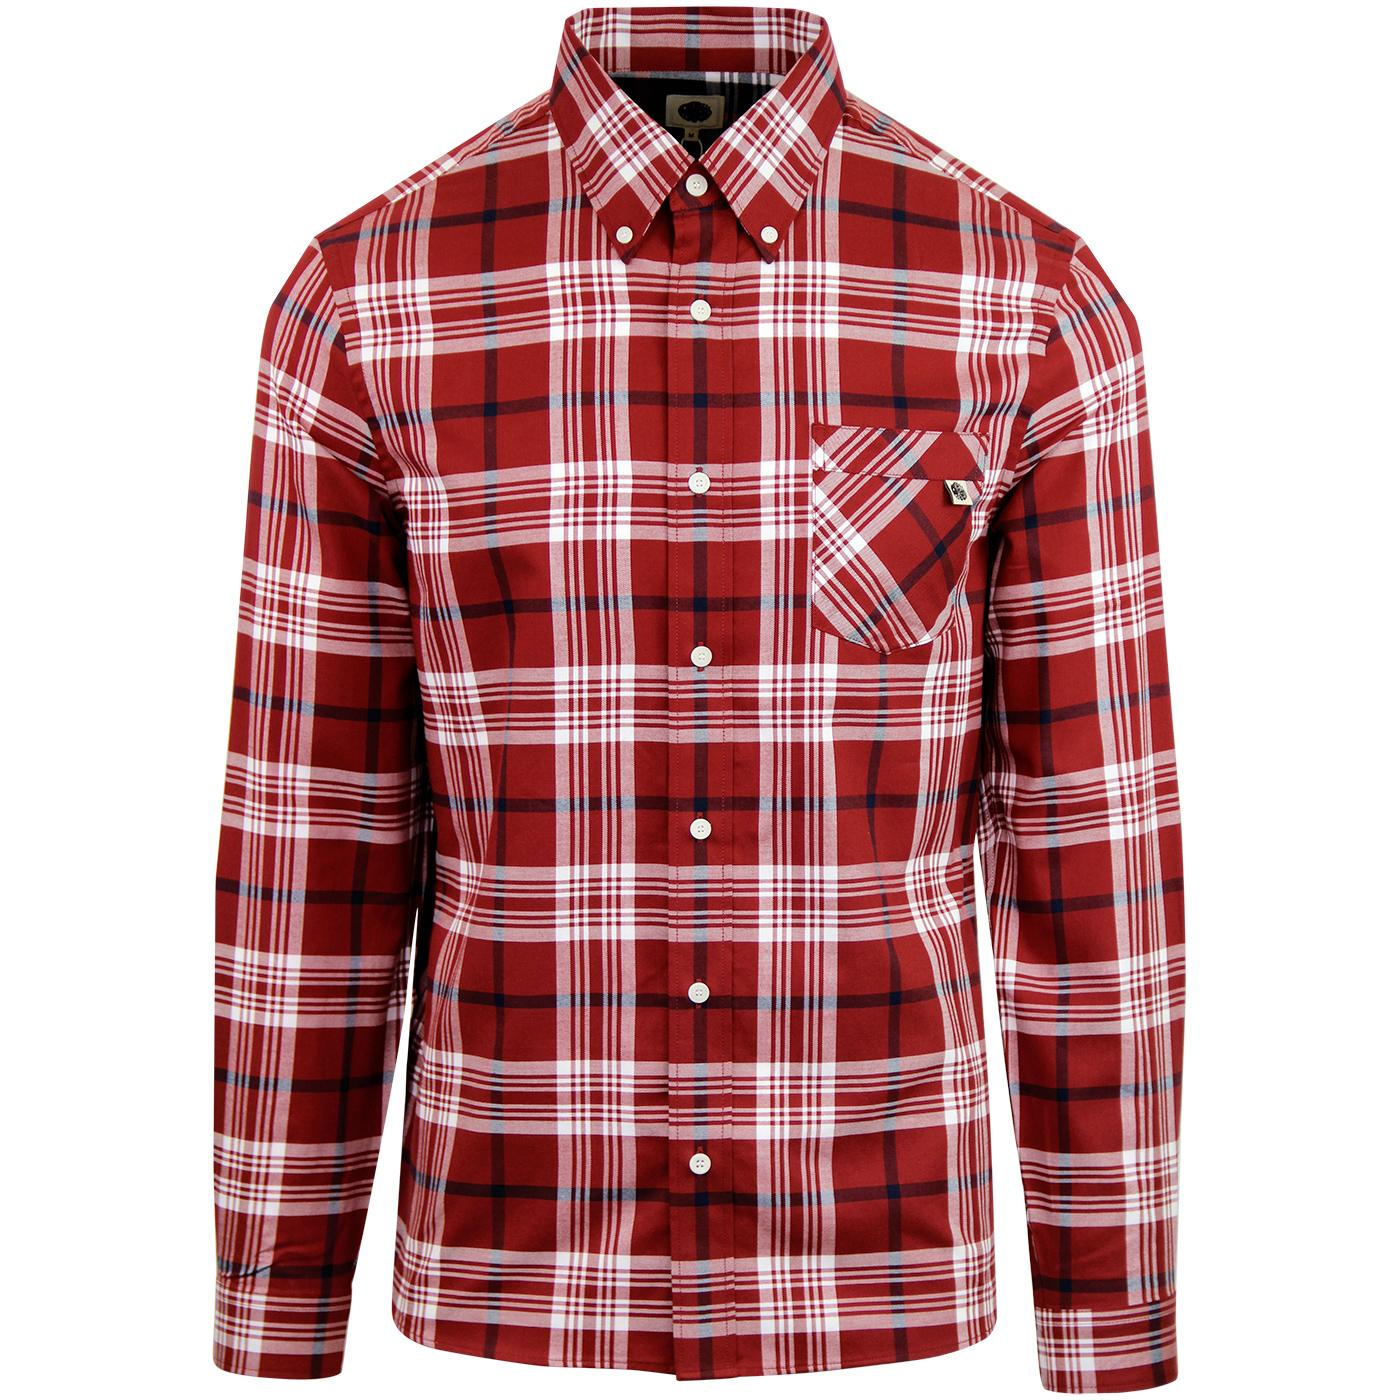 PRETTY GREEN Men's Retro Mod Large Check Shirt RED